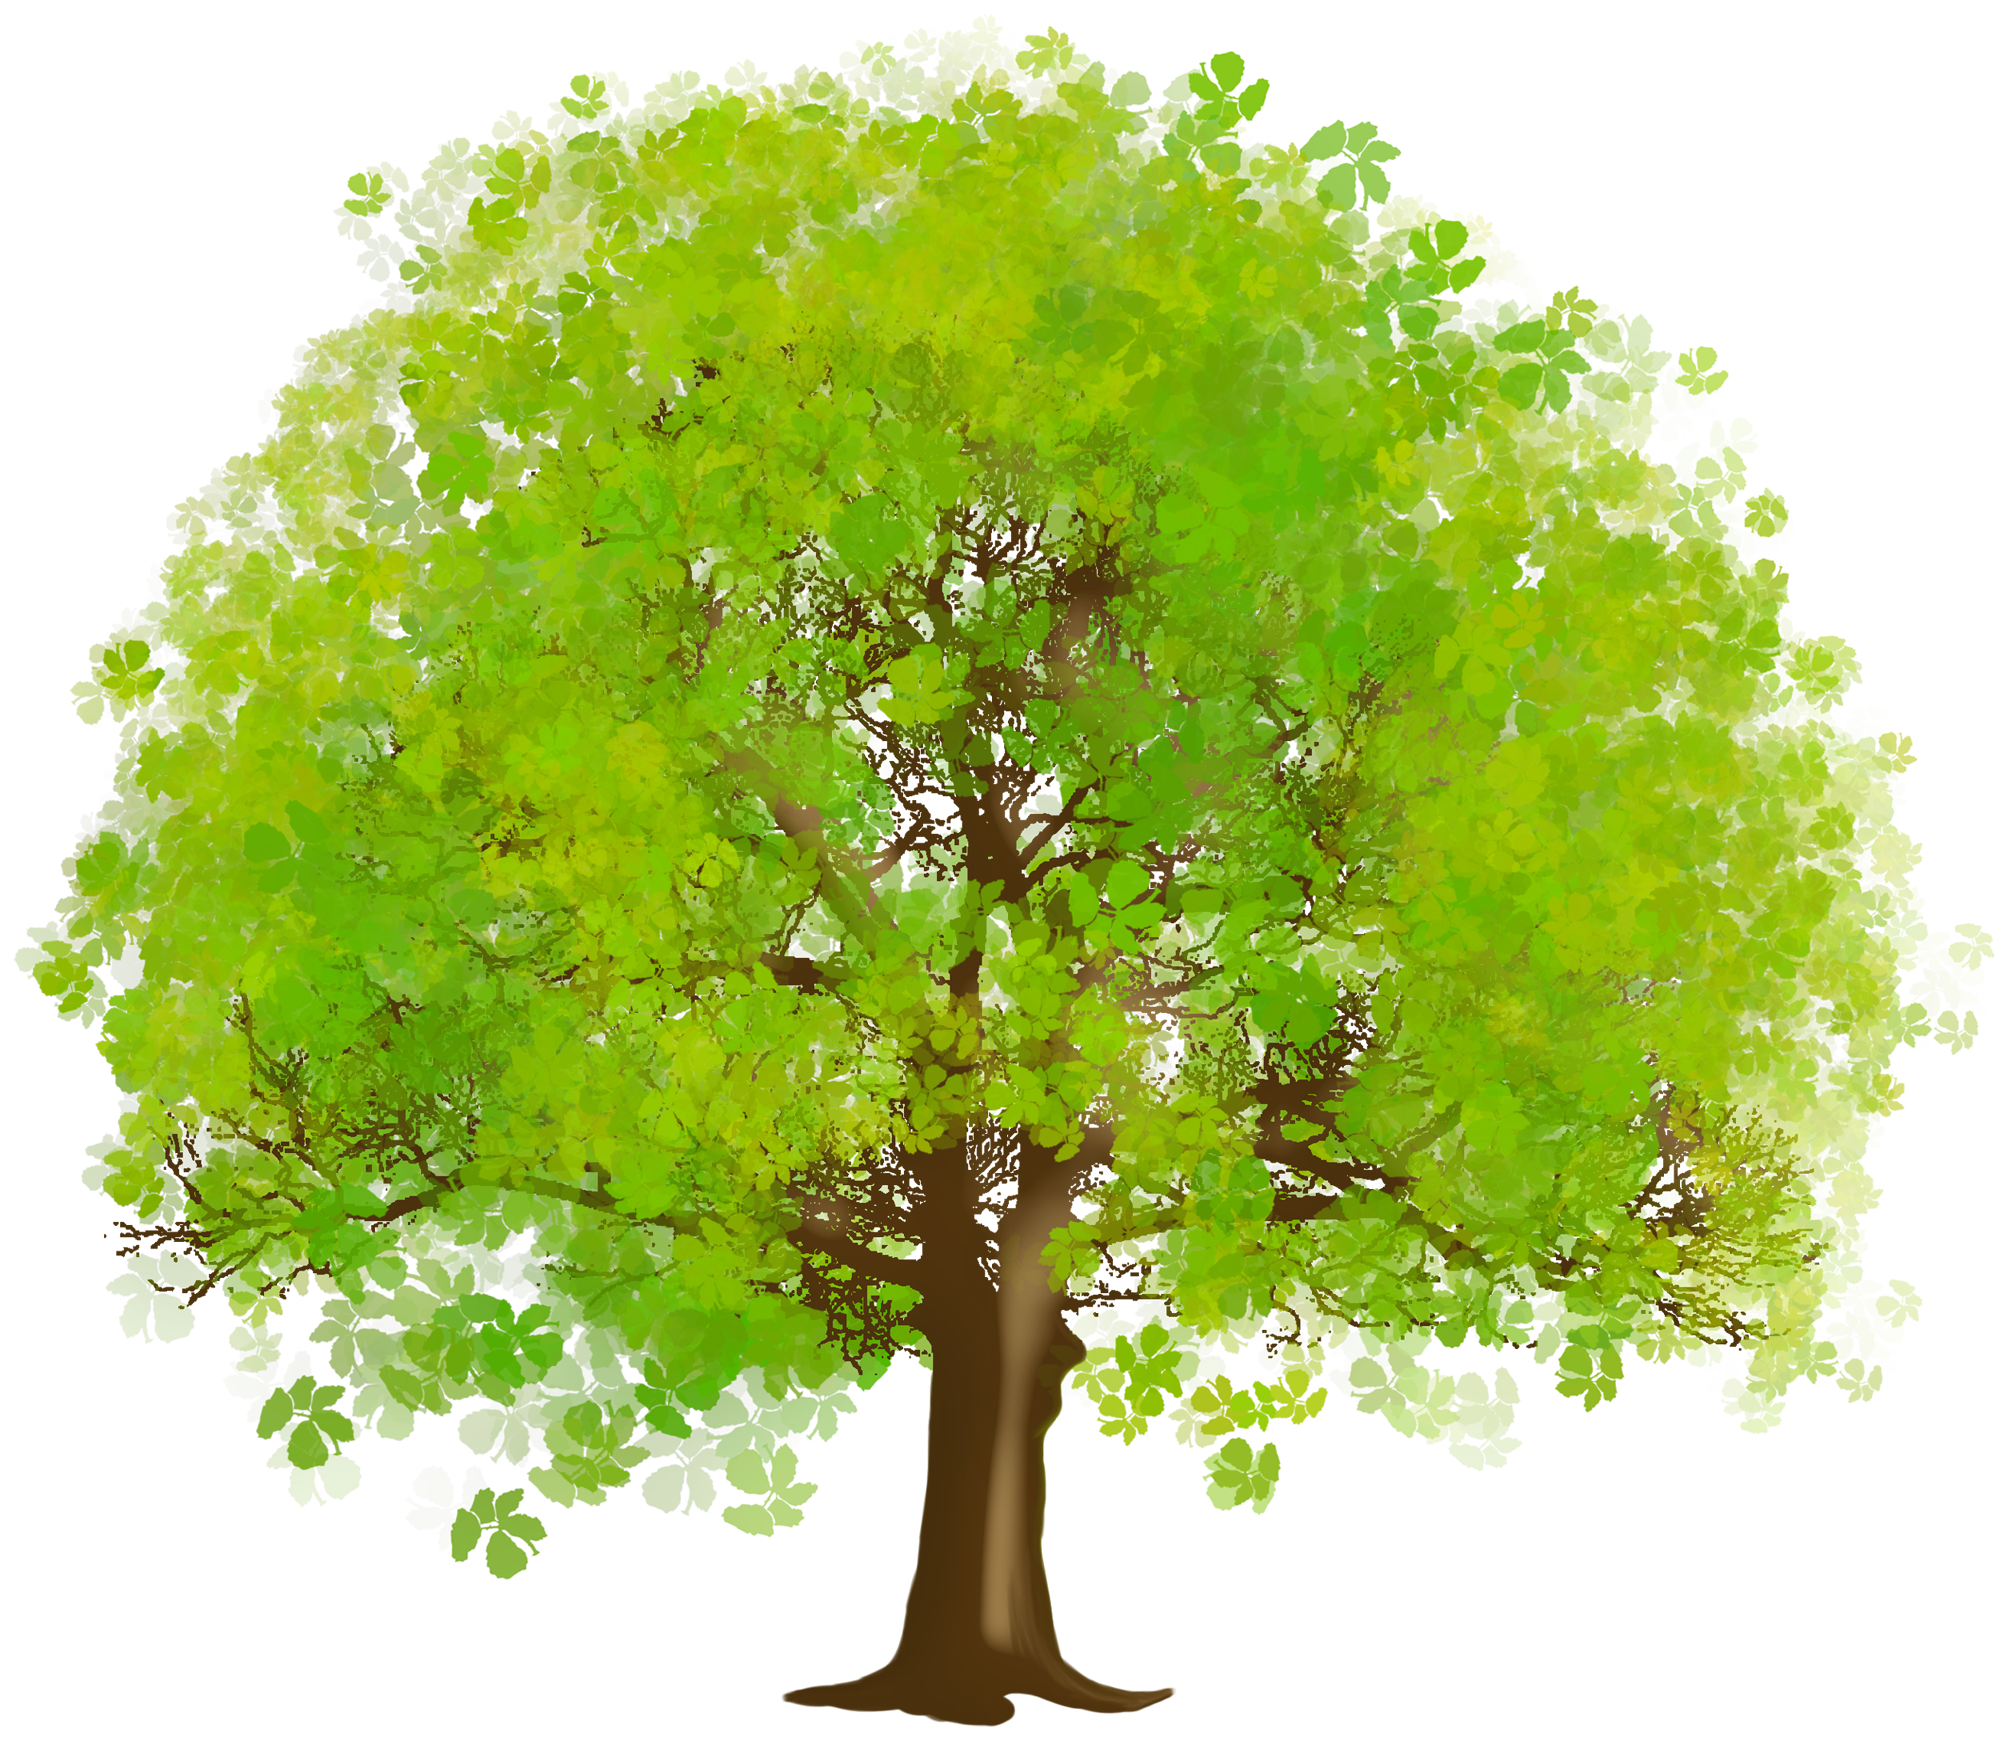 Large Green Tree PNG Clipart | Illustrations | Pinterest | Clipart ... banner freeuse download